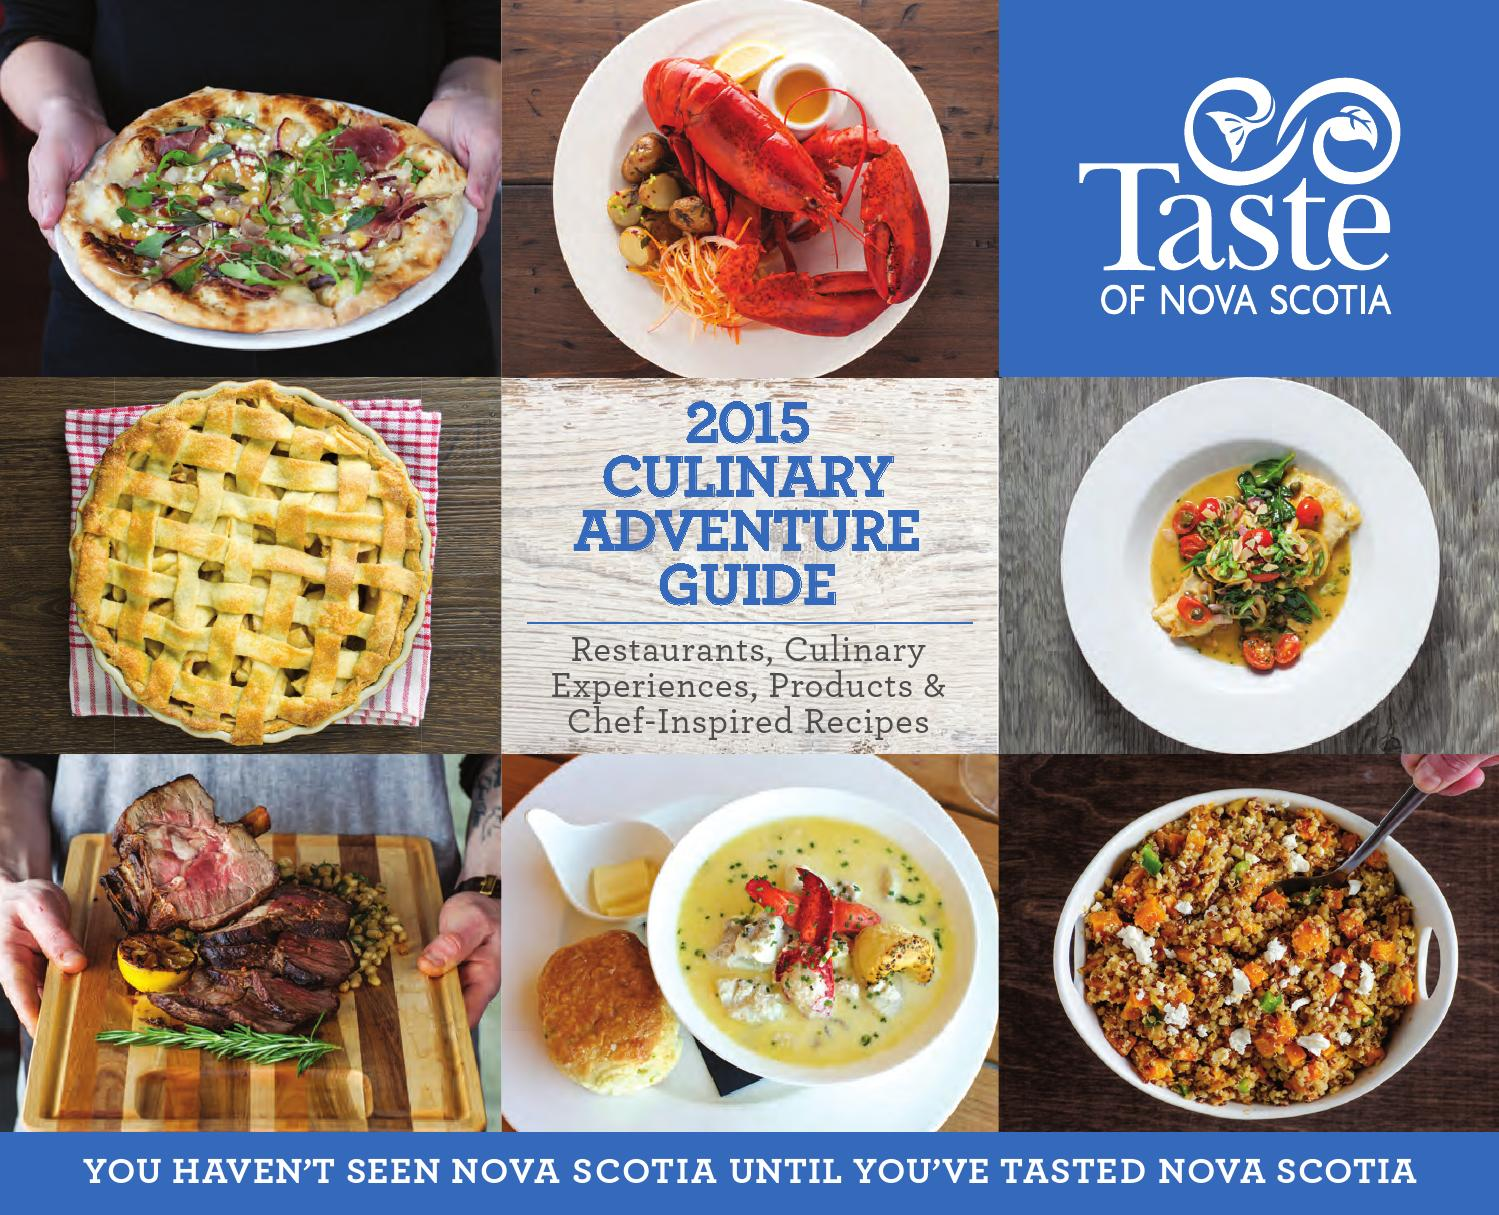 Windows vista chebucto plus connection - 2015 Taste Of Nova Scotia Culinary Adventure Guide By Taste Of Nova Scotia Issuu